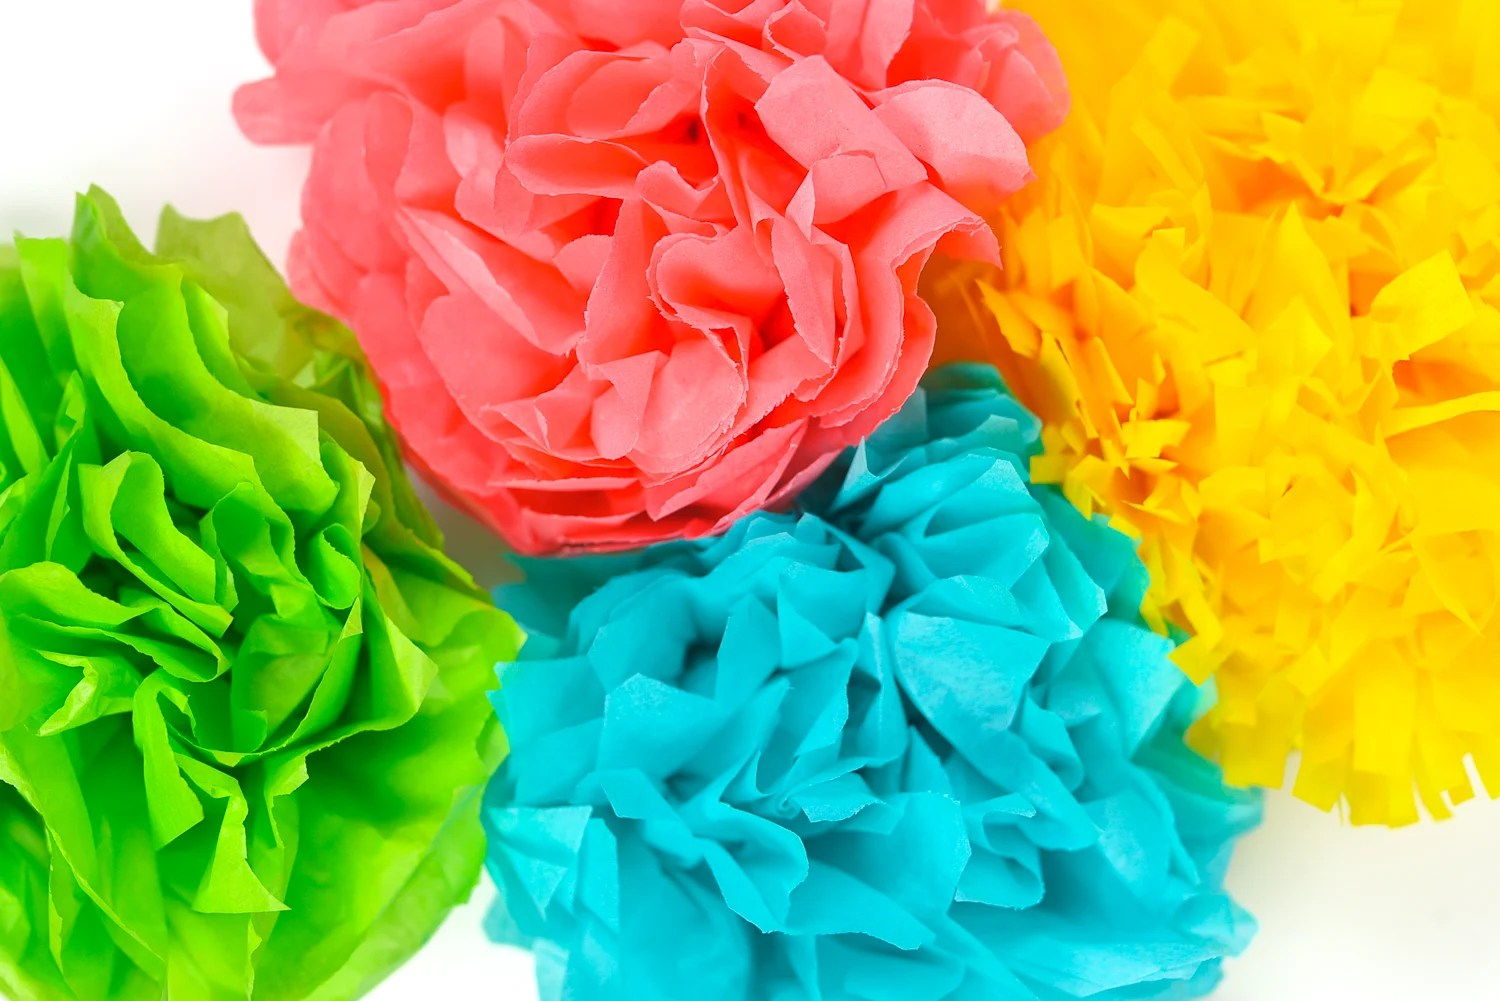 Bright Tissue paper flowers - green, teal, red, and yellow